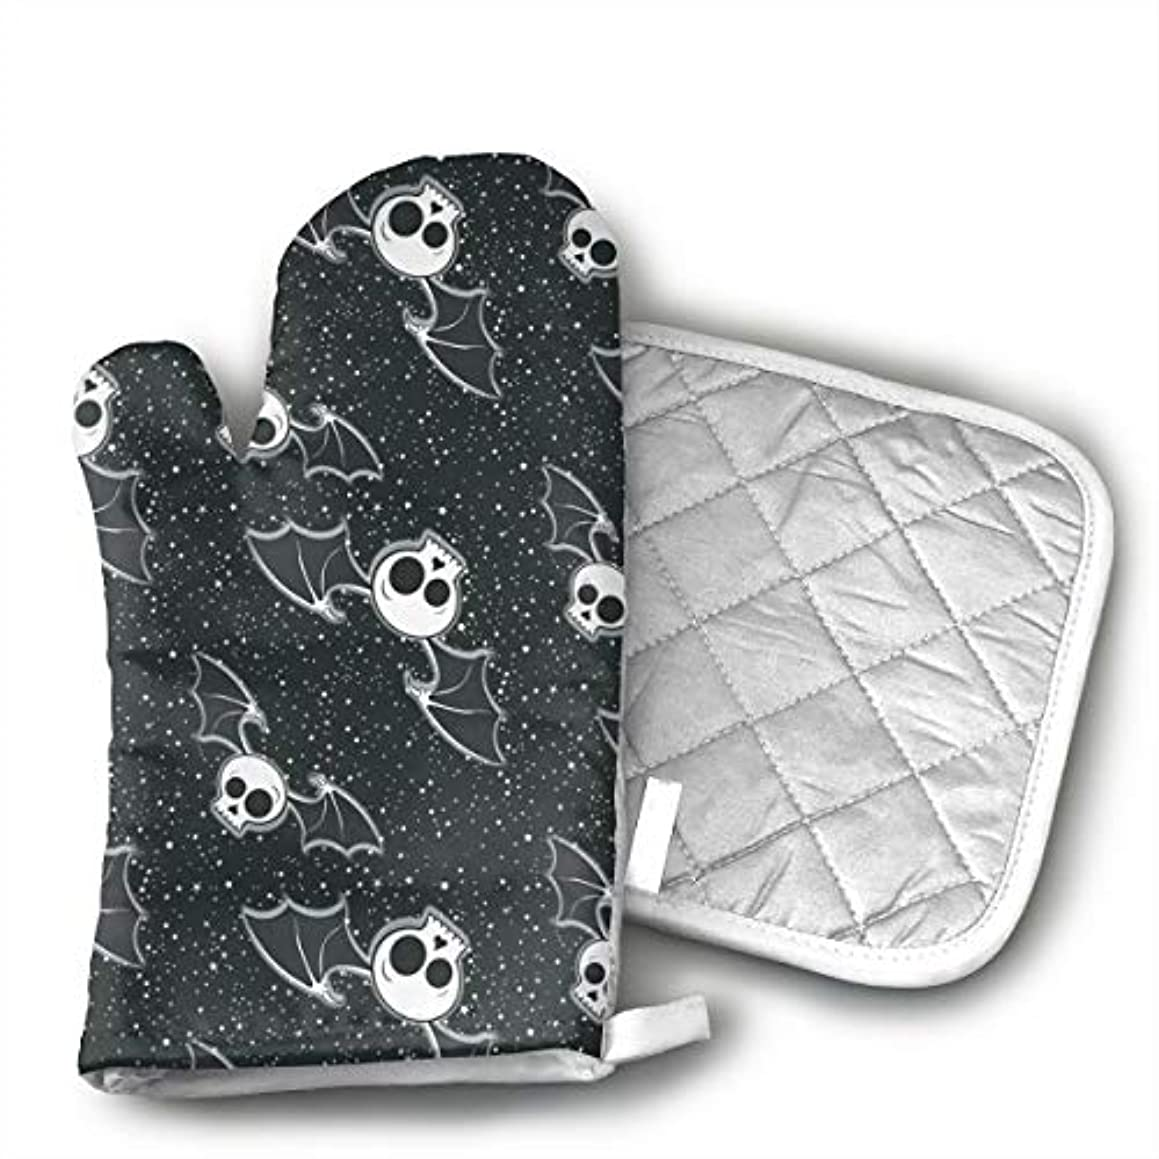 Xayeu Halloween Skulls Bat Oven Mitts for Kitchen Heat Resistant, Oven Gloves for BBQ Cooking Baking, Grilling,